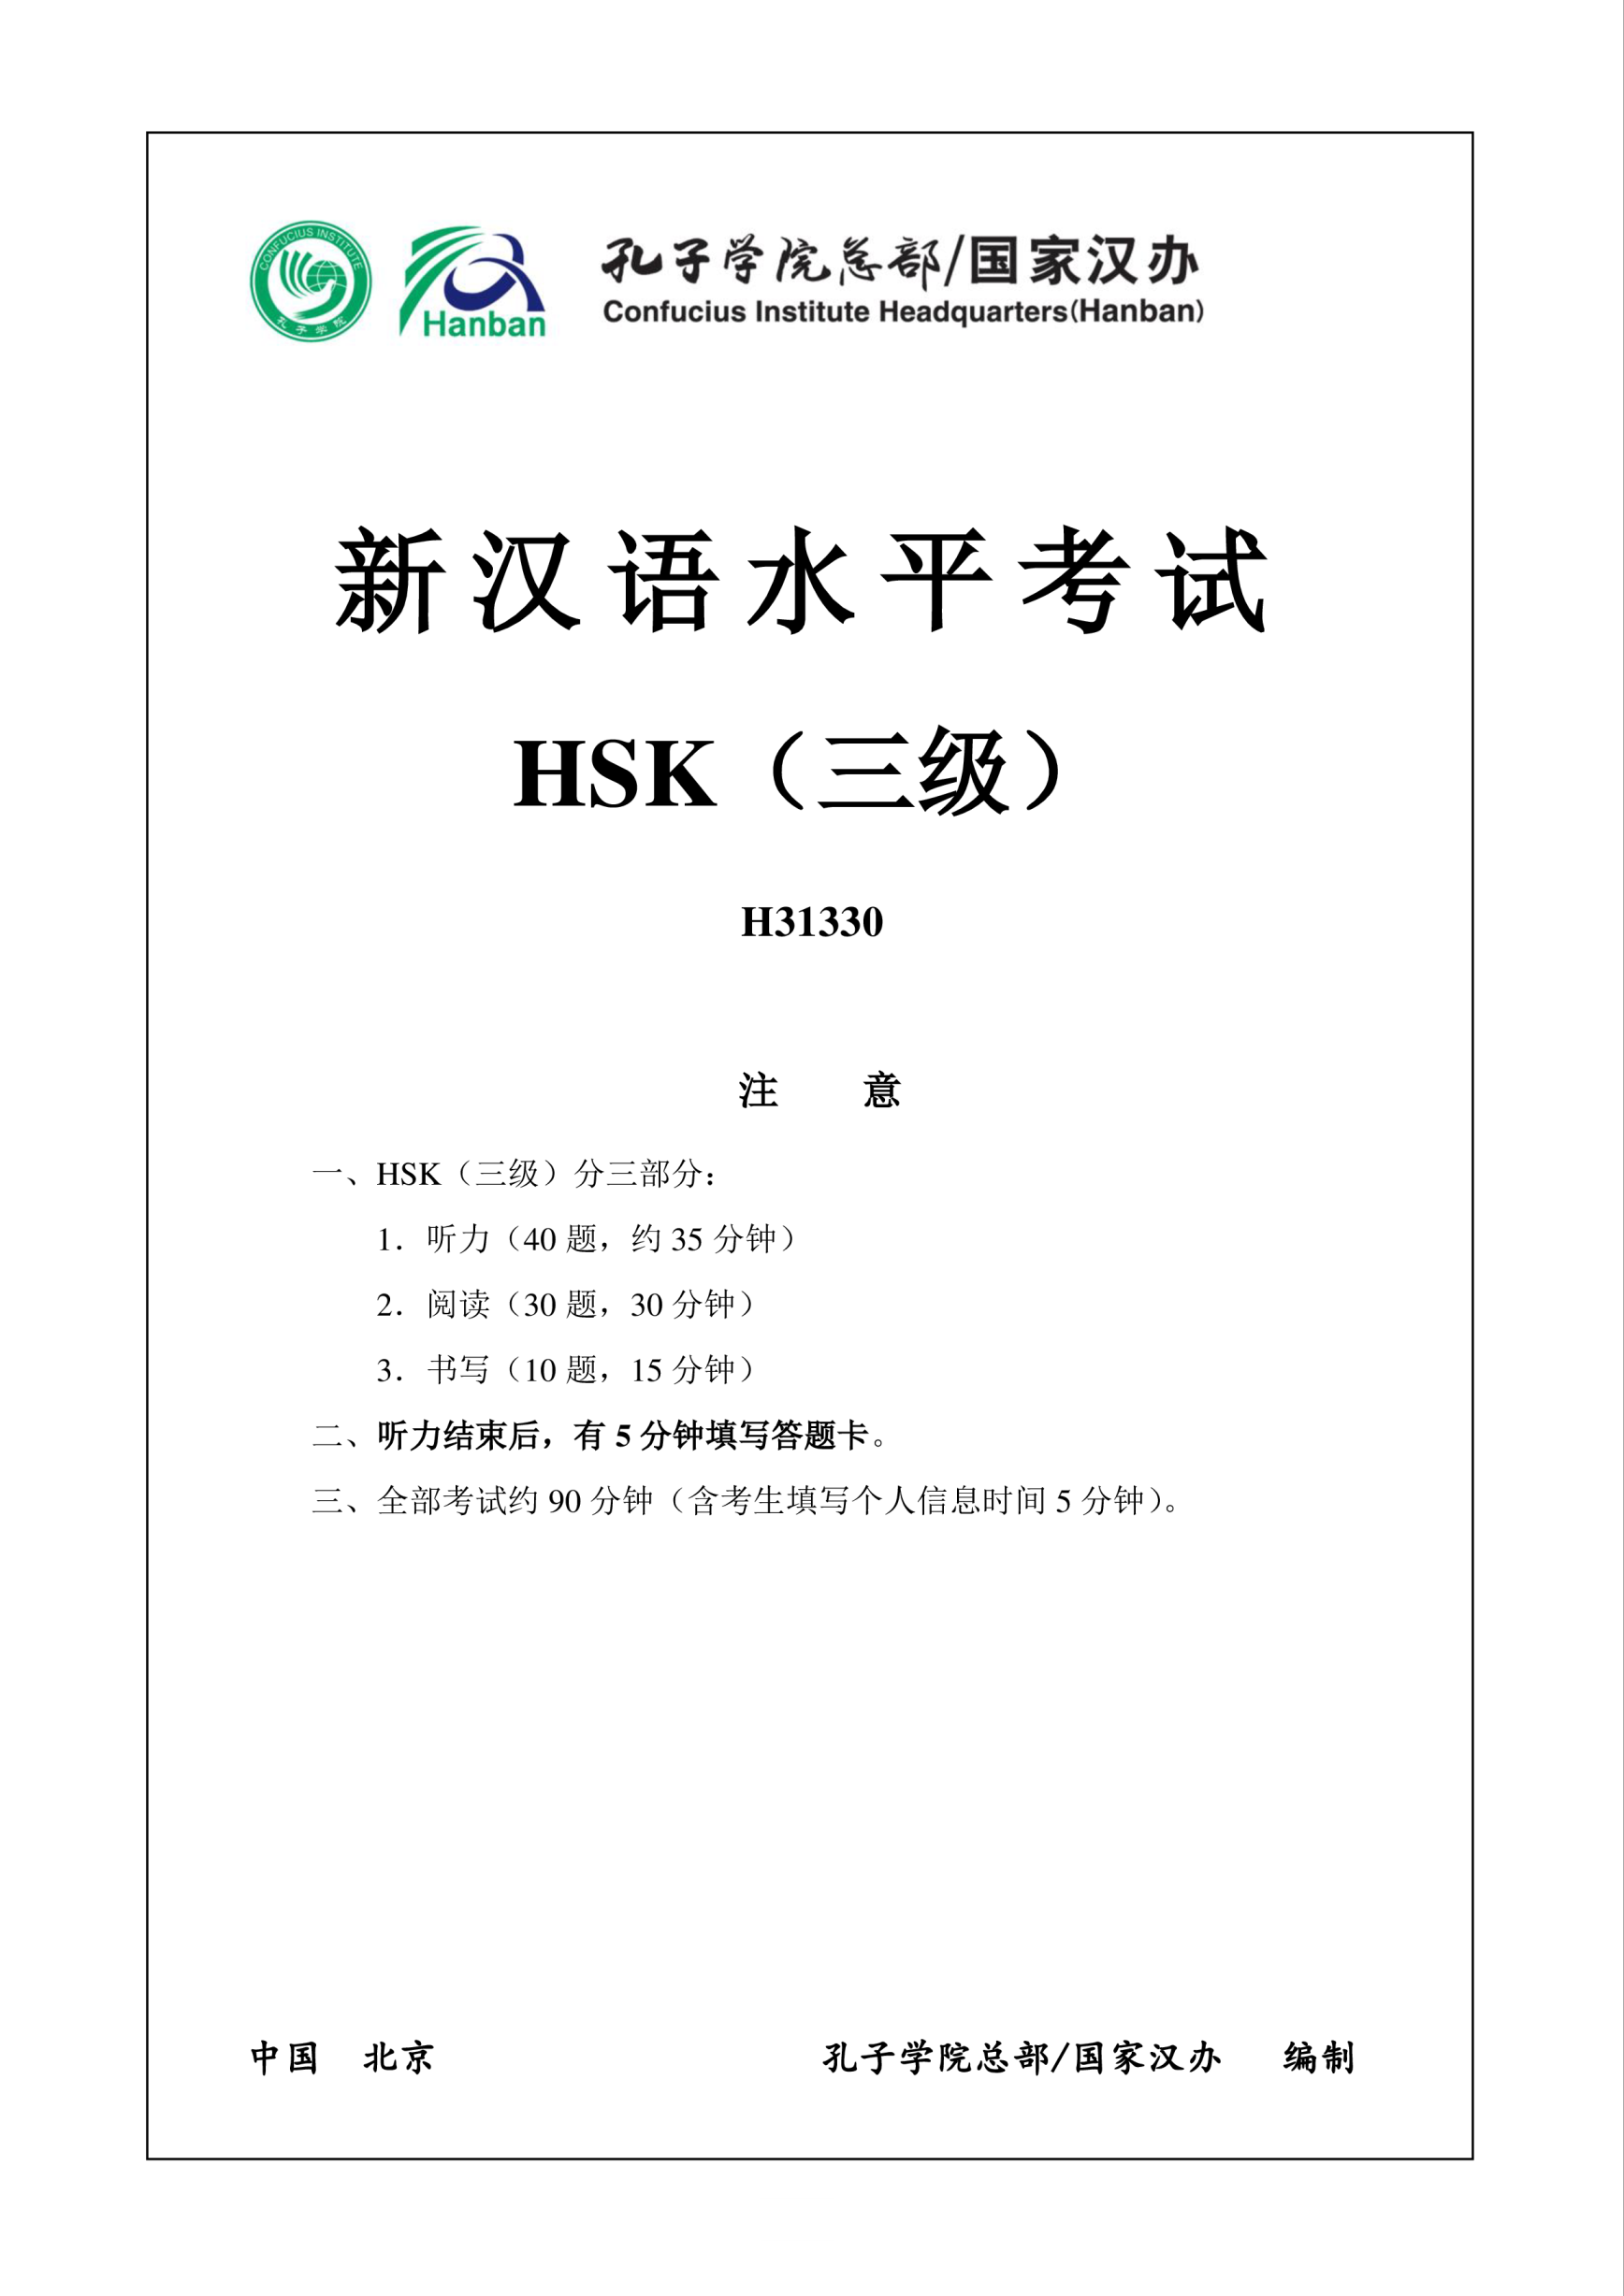 template preview imageHSK3 Chinese Exam including Answers # HSK3 H31330